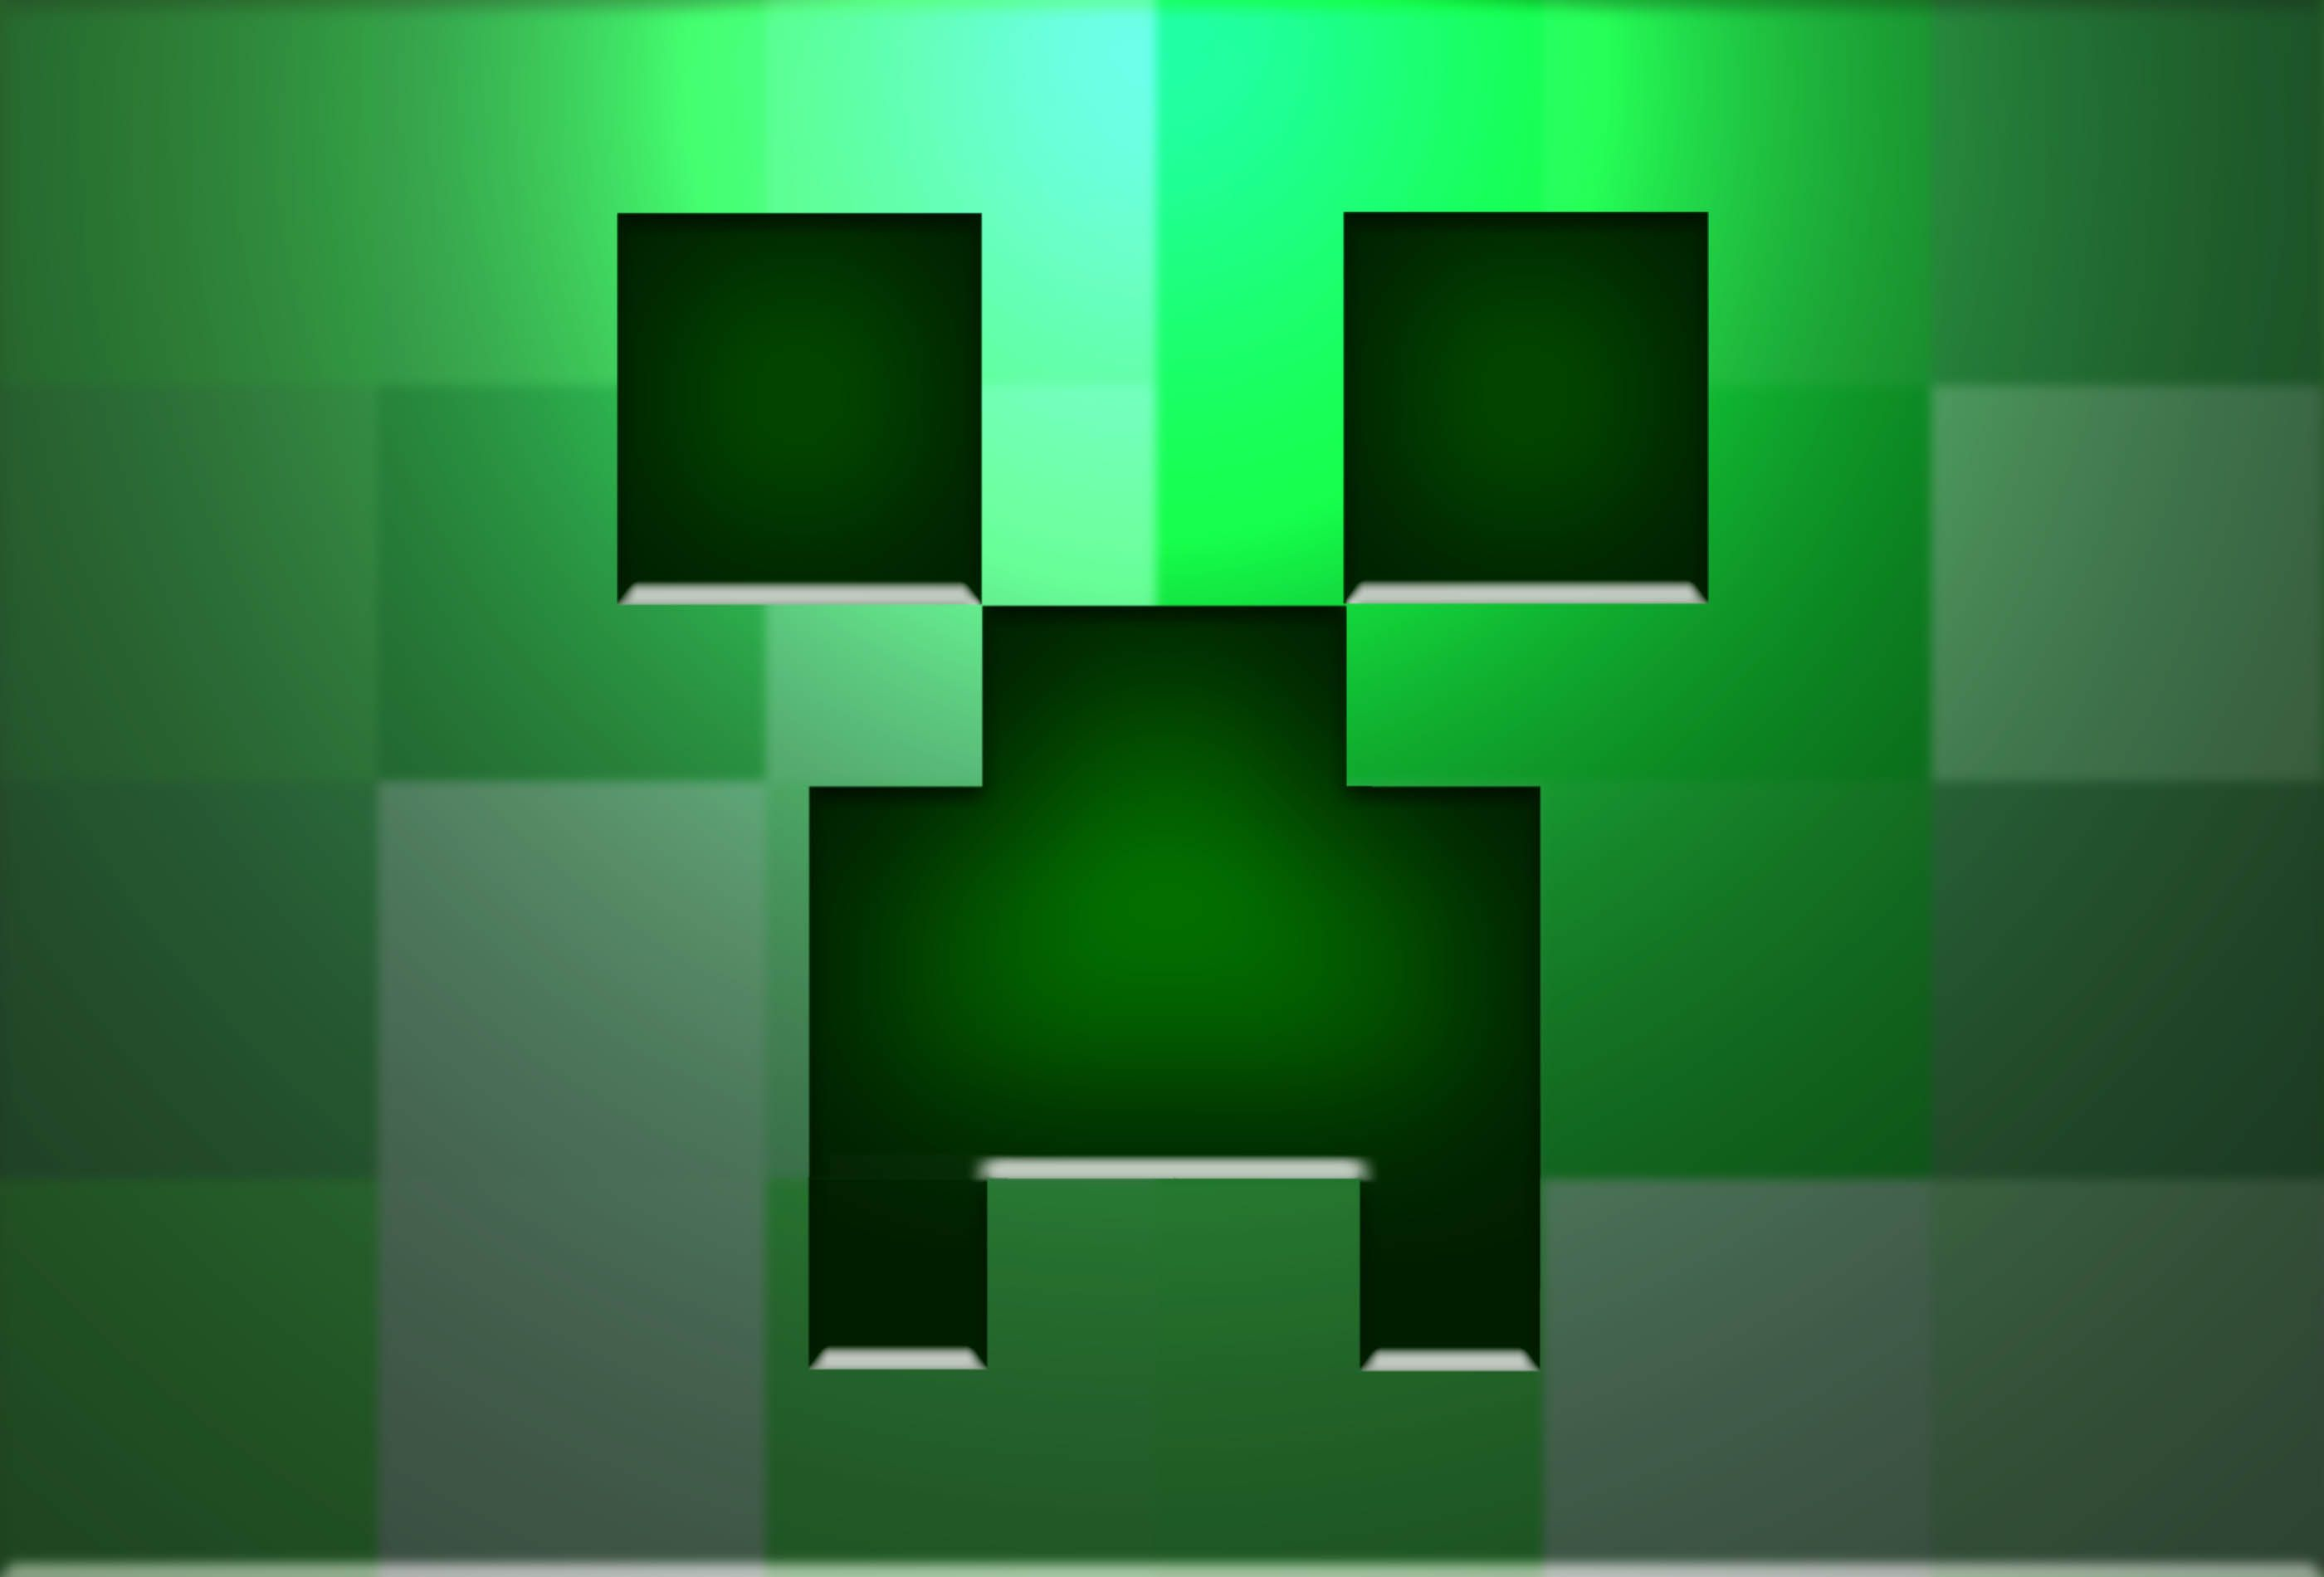 Top Wallpaper Minecraft Abstract - 797fcd6bae0c4ce6570635106abb4944  Picture_197063.jpg